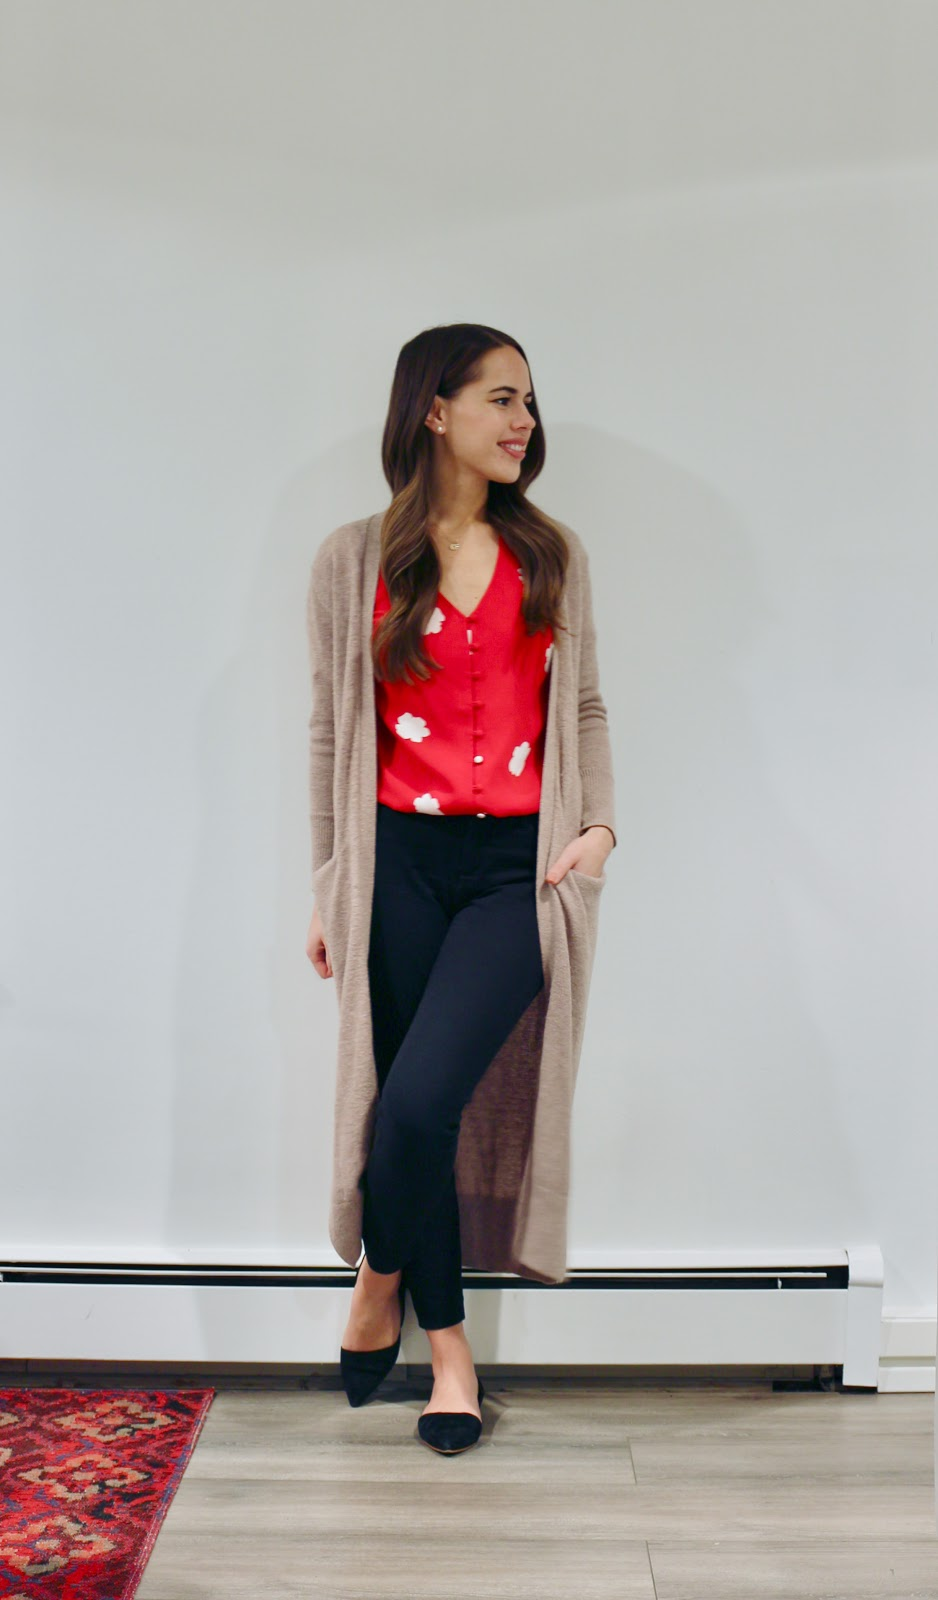 Jules in Flats - Red Floral Blouse + Duster Cardigan (Business Casual Winter Workwear on a Budget)